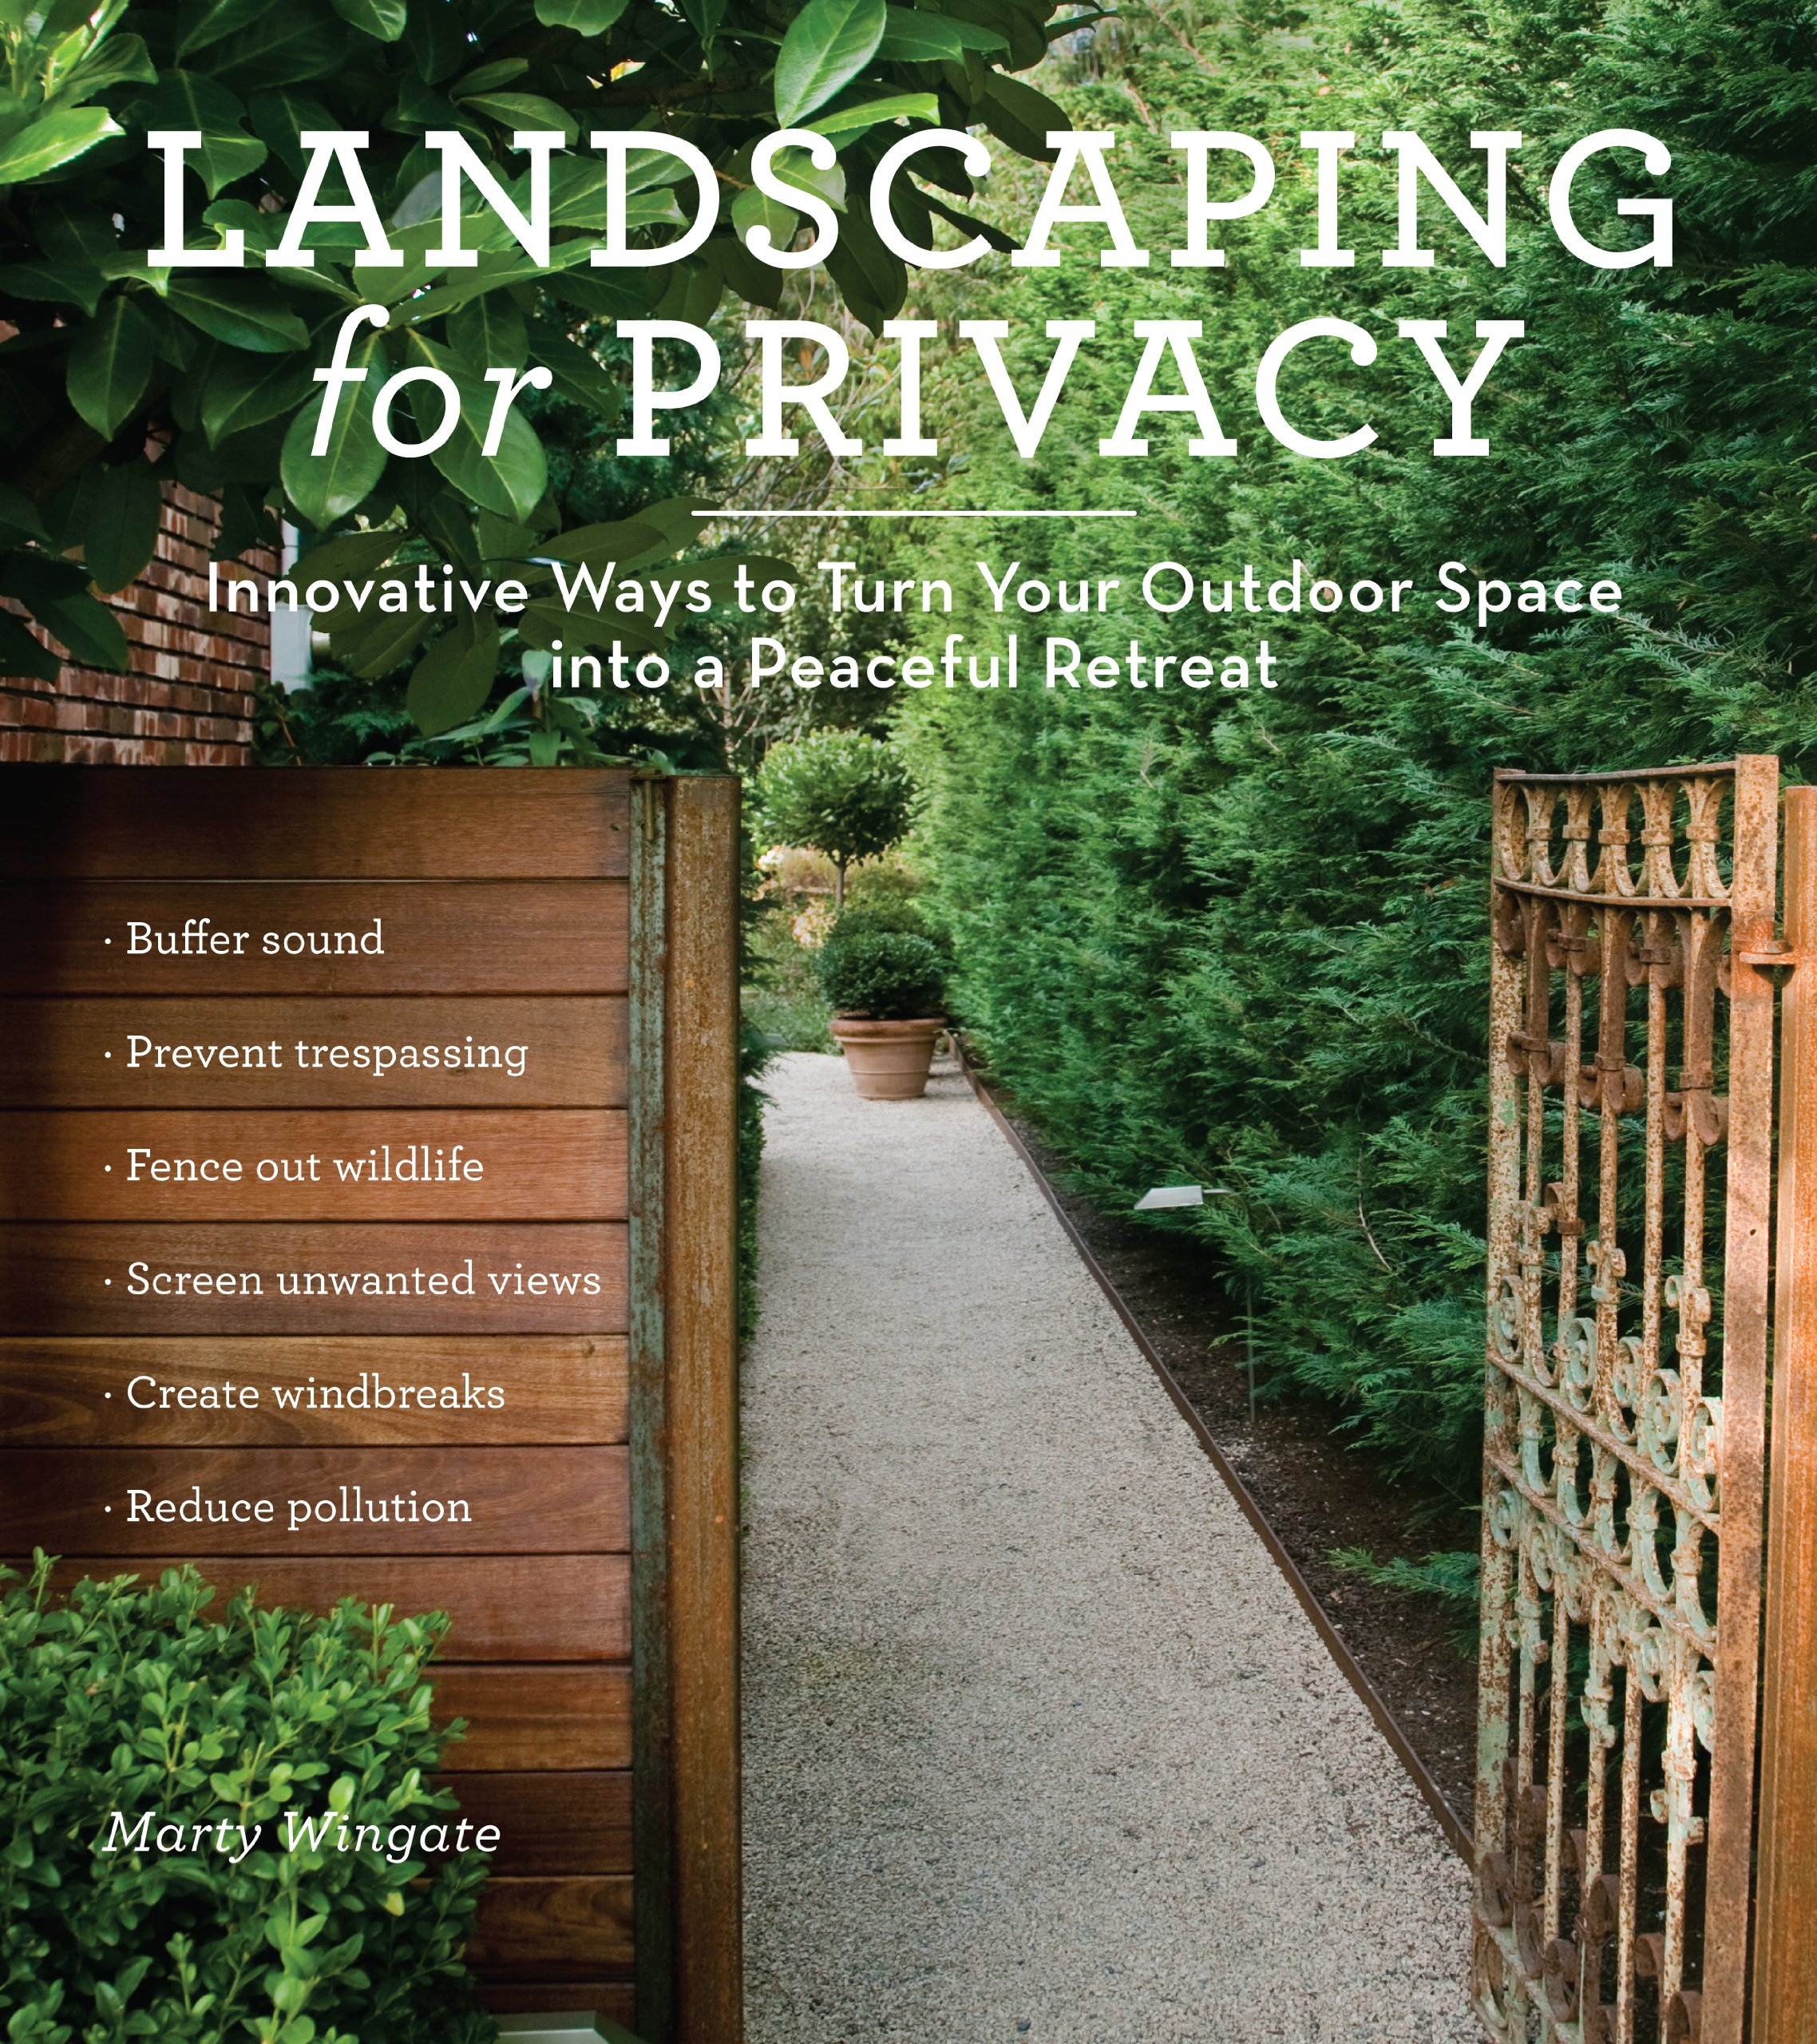 Landscaping for Privacy: Innovative Ways to Turn Your Outdoor Space ...